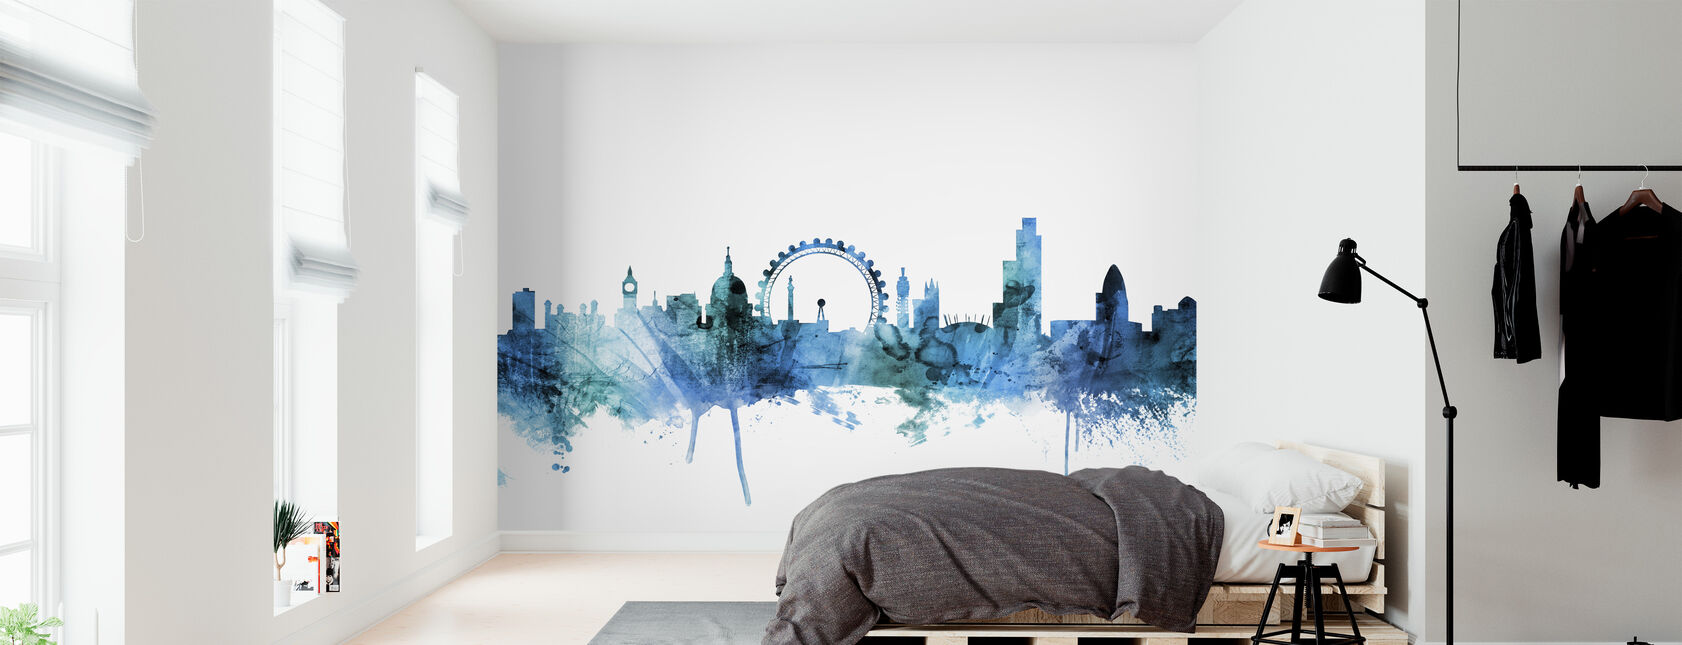 London England Skyline - Wallpaper - Bedroom